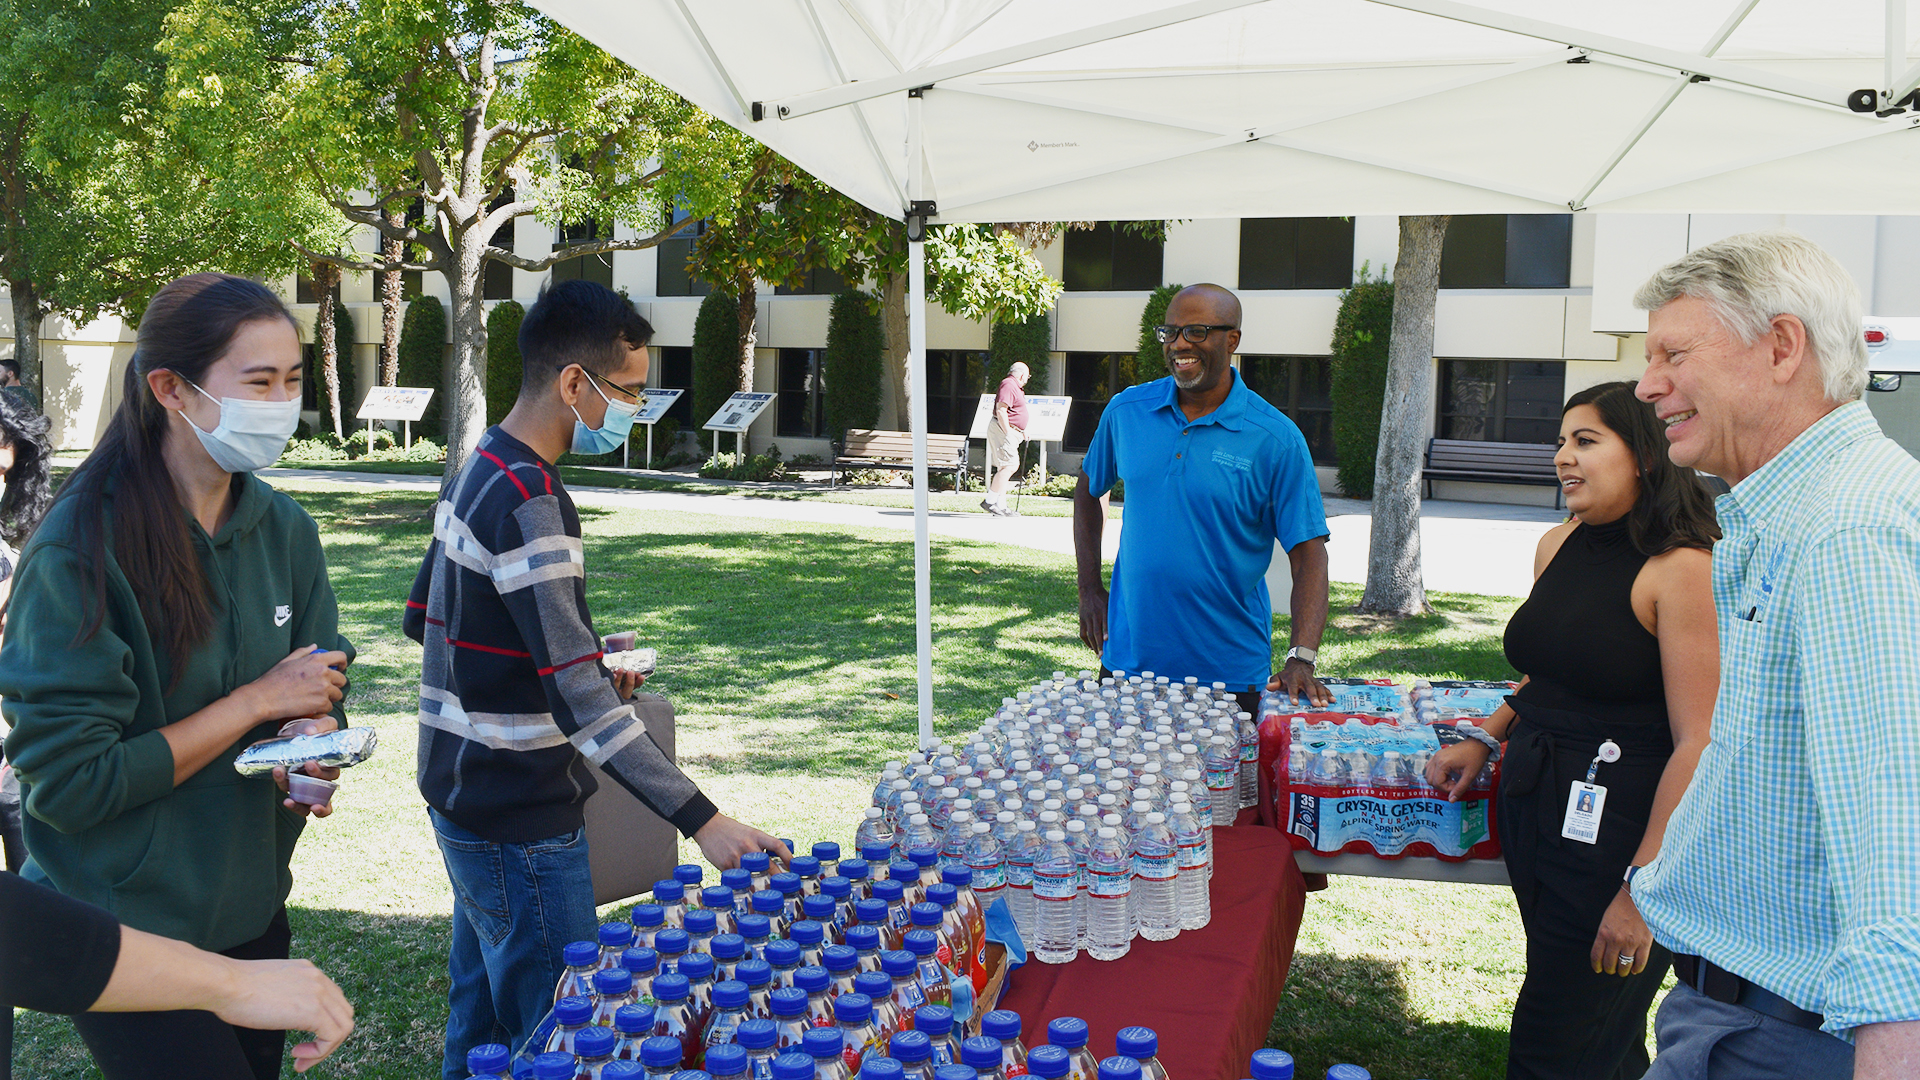 Drinks provided by Drayson Center for Lunch on the Lawn